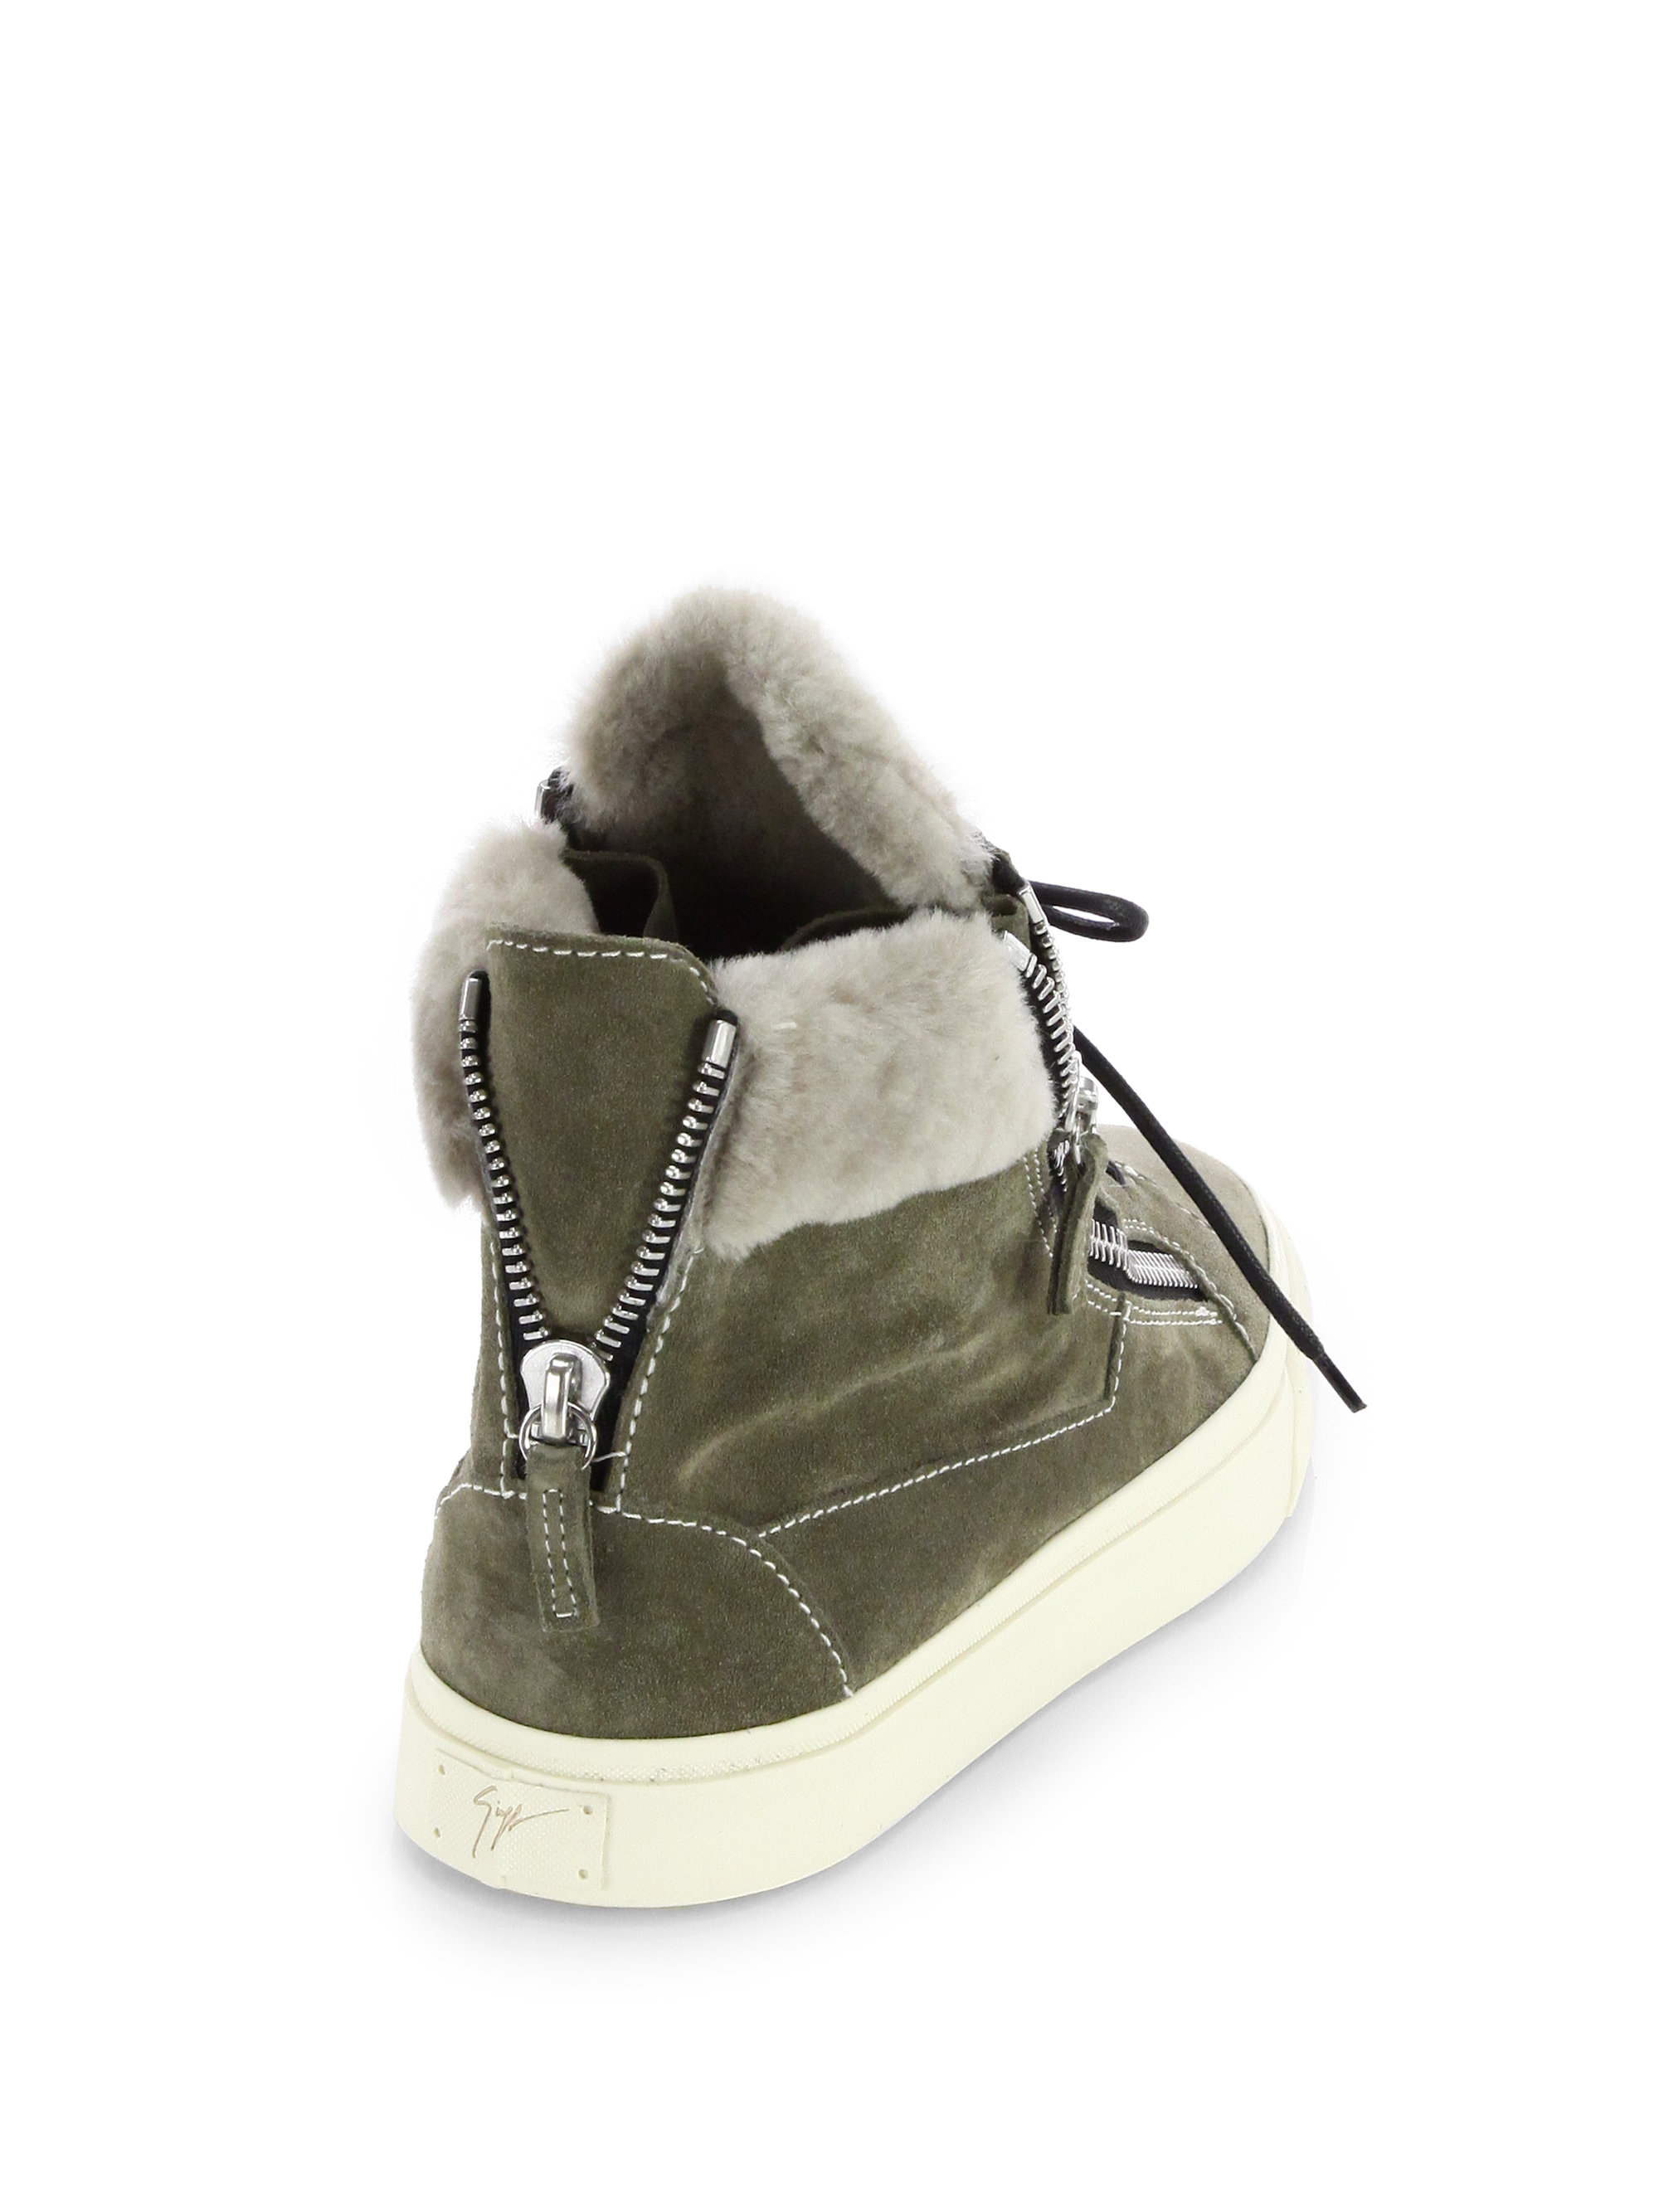 Giuseppe Zanotti Suede Mid Top Double Zip Sneakers FbhIT7A